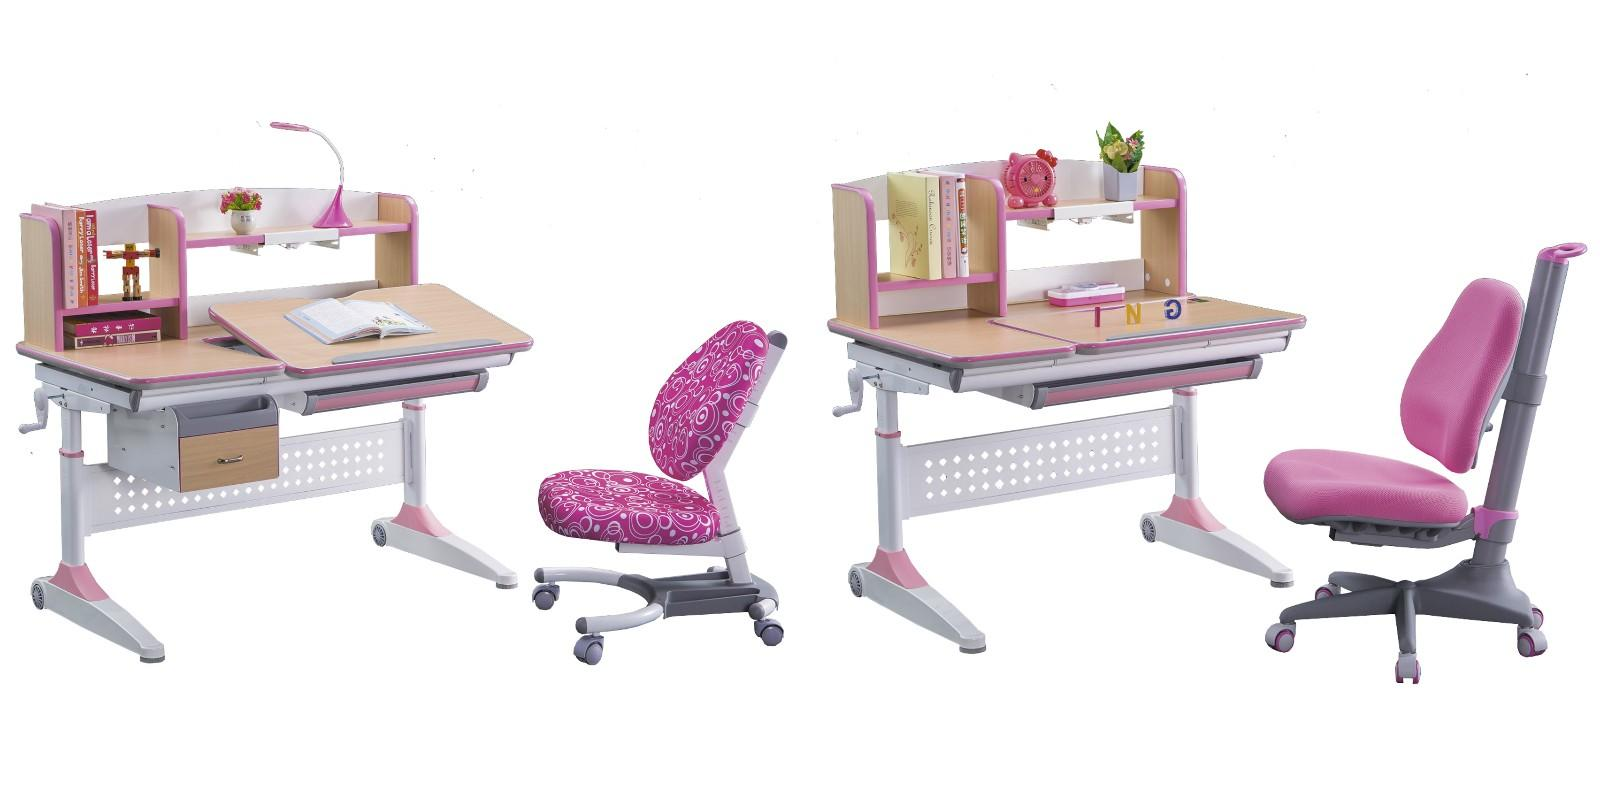 Xinyilong Furniture professional study table design for bedroom manufacturer for children